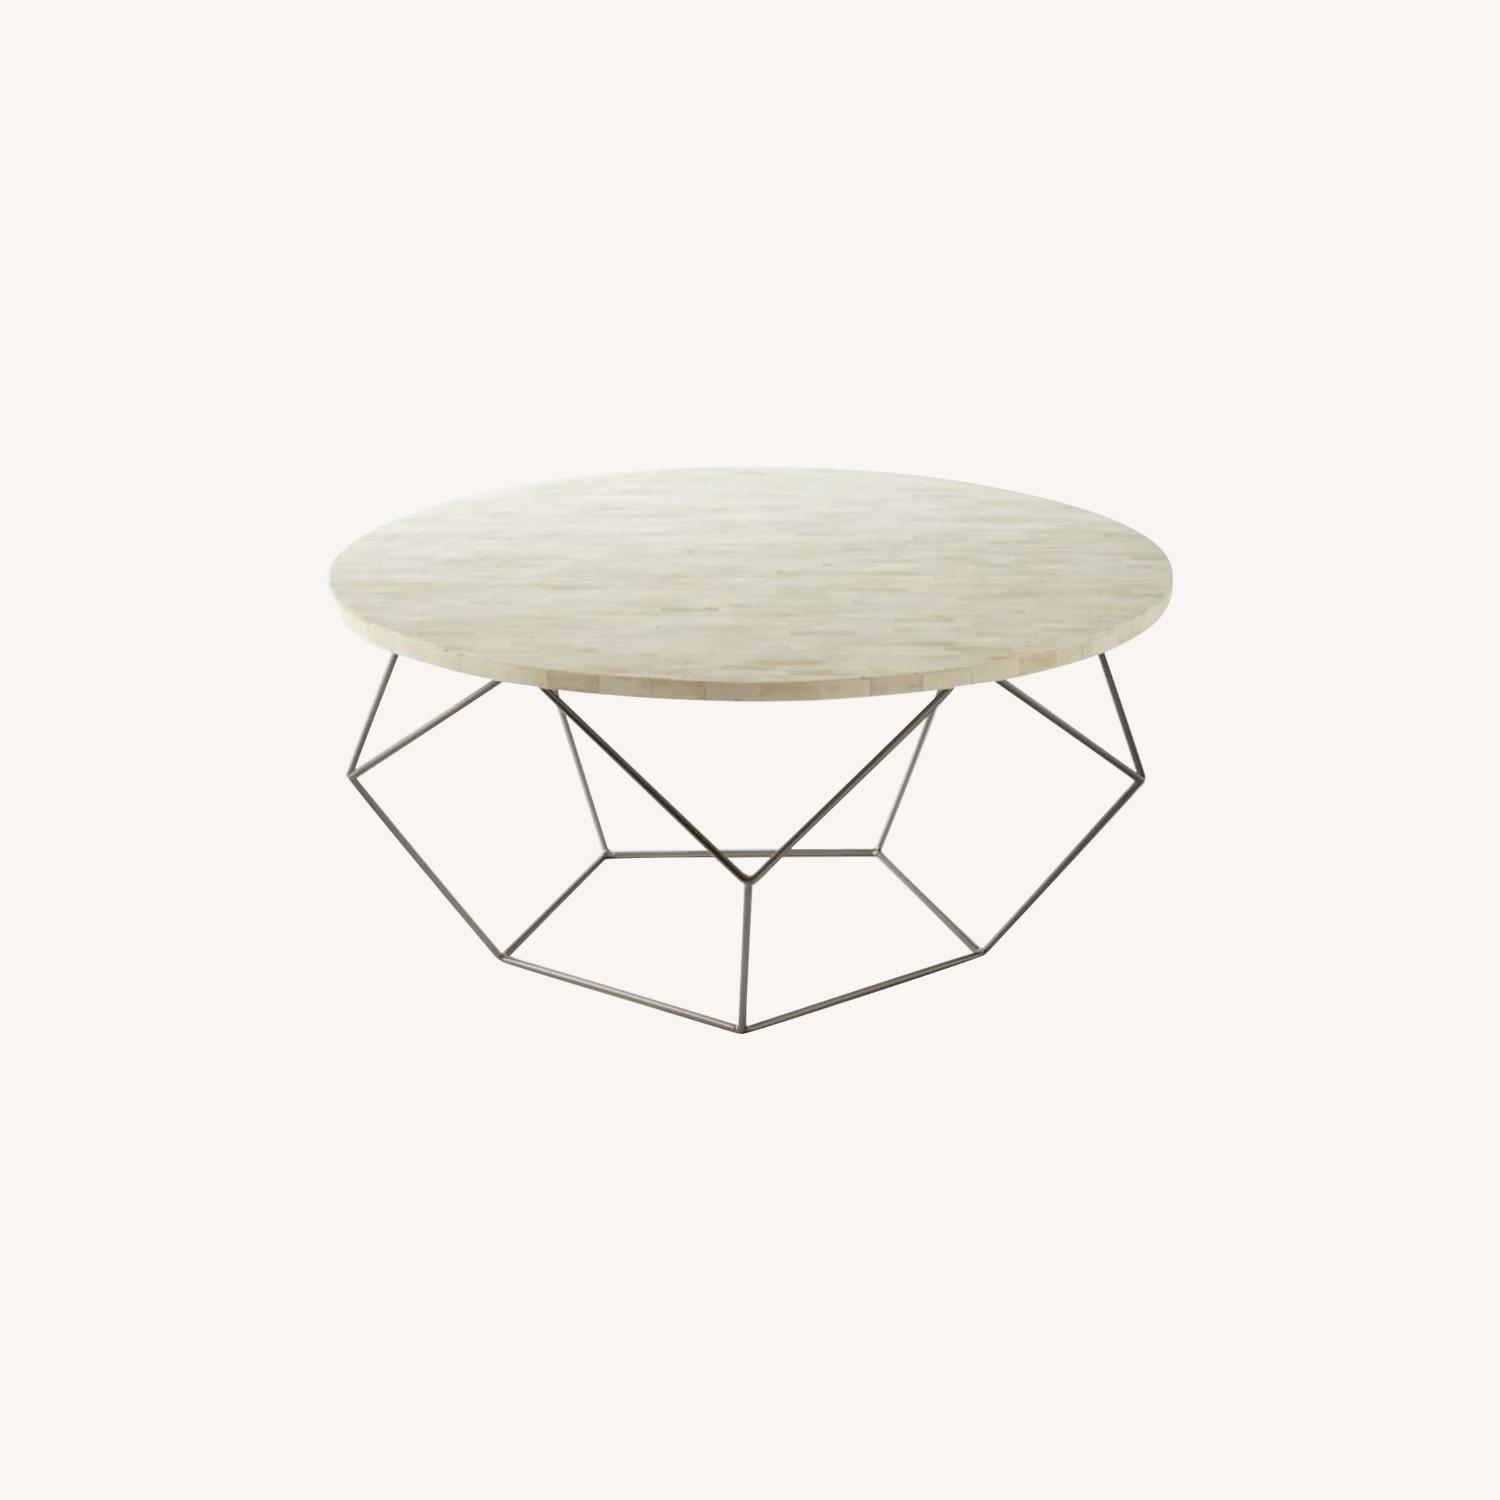 West Elm Origami Oversized Coffee Table - image-0